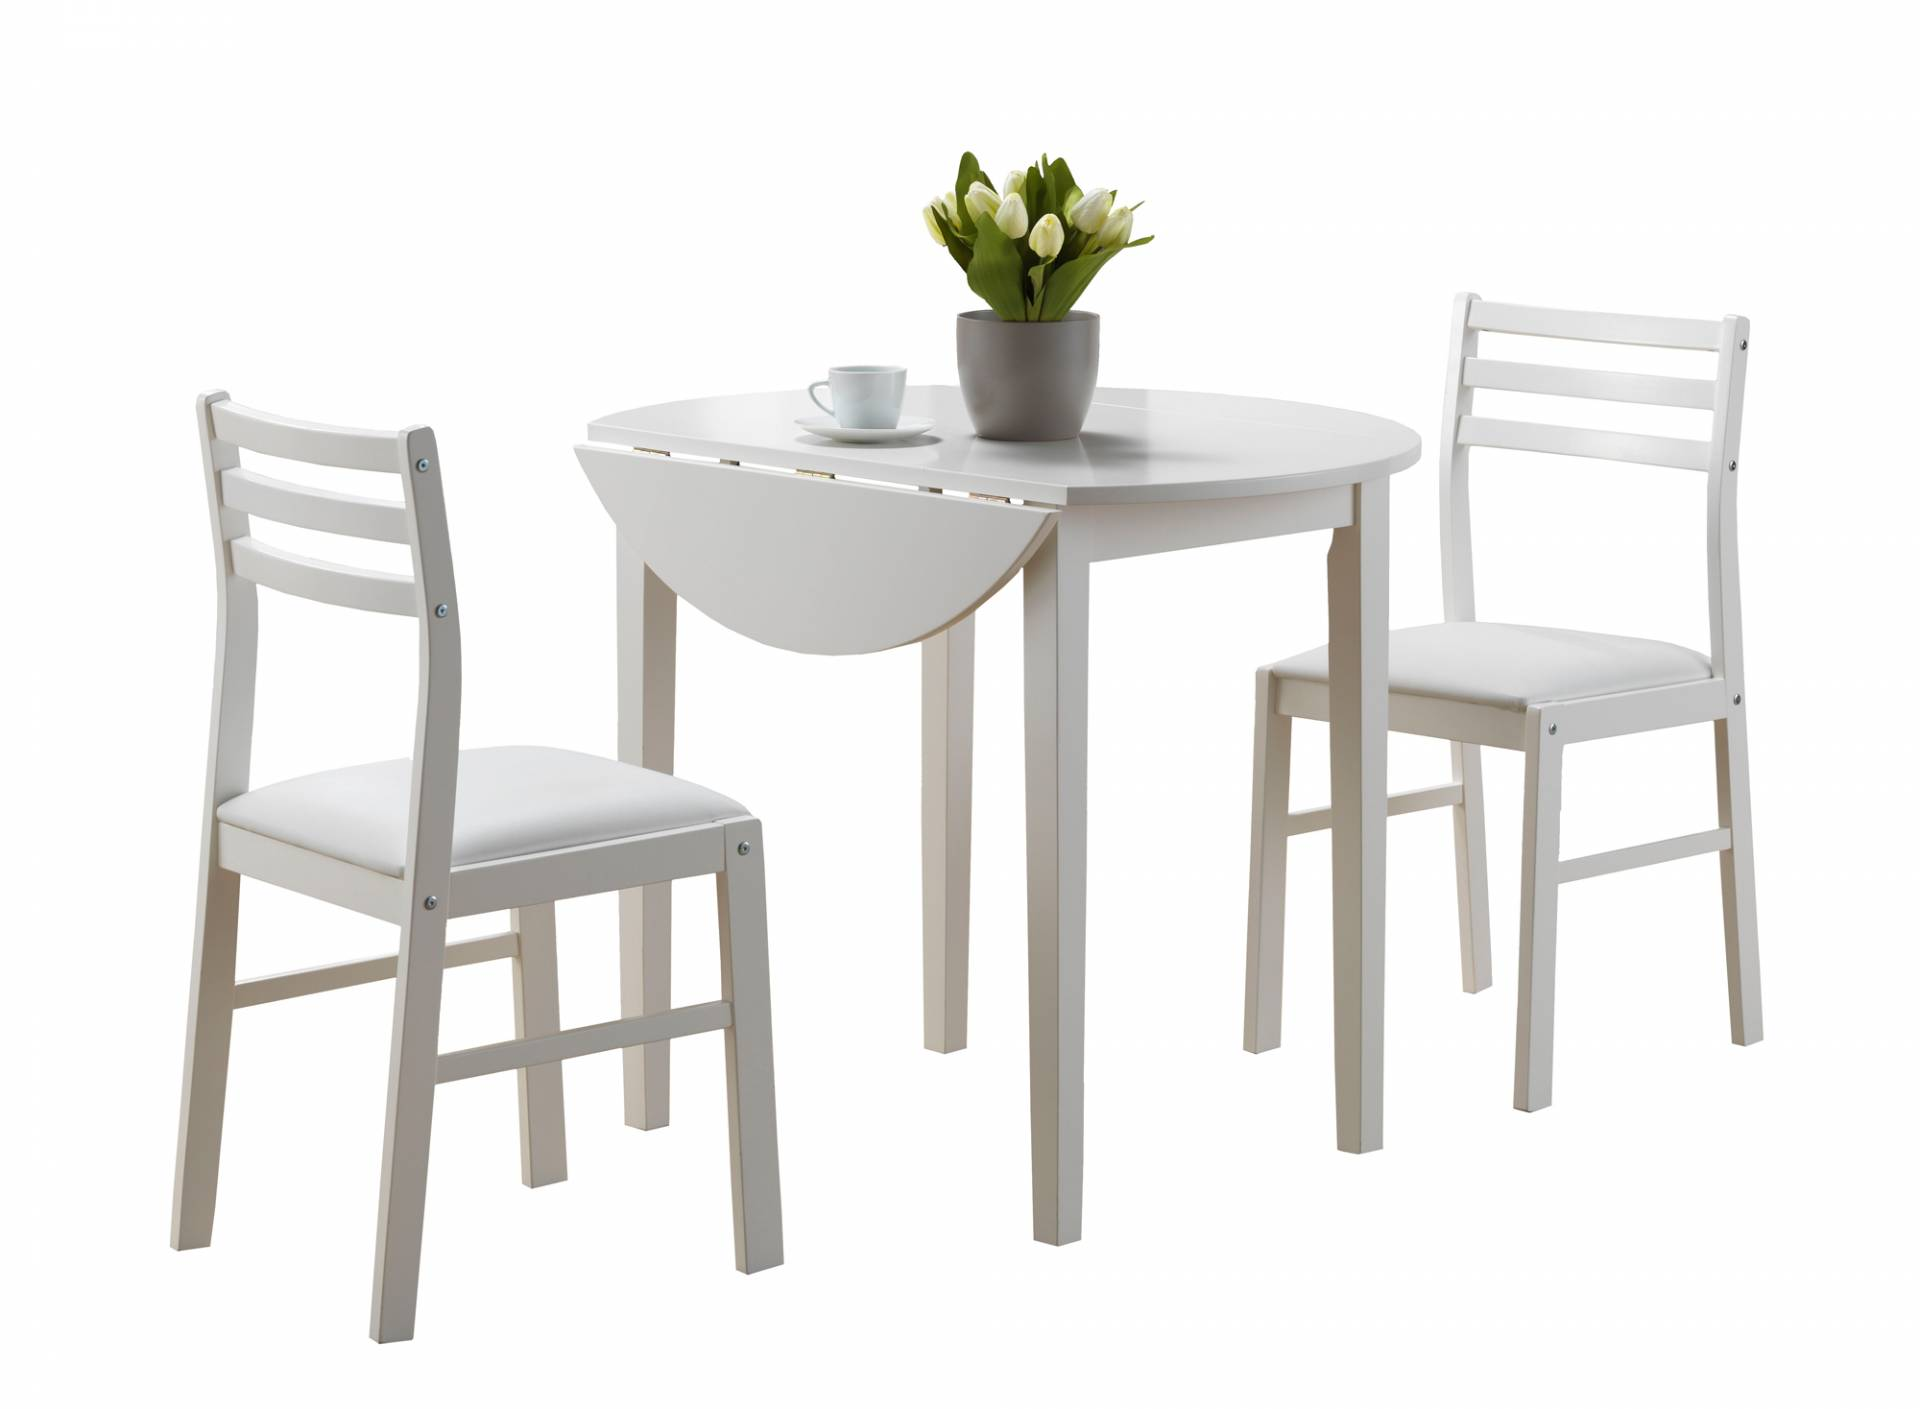 "Monarch 3 Piece 36"" Round Wooden Drop Leaf Table and Chairs Dining Set - White from Monarch"